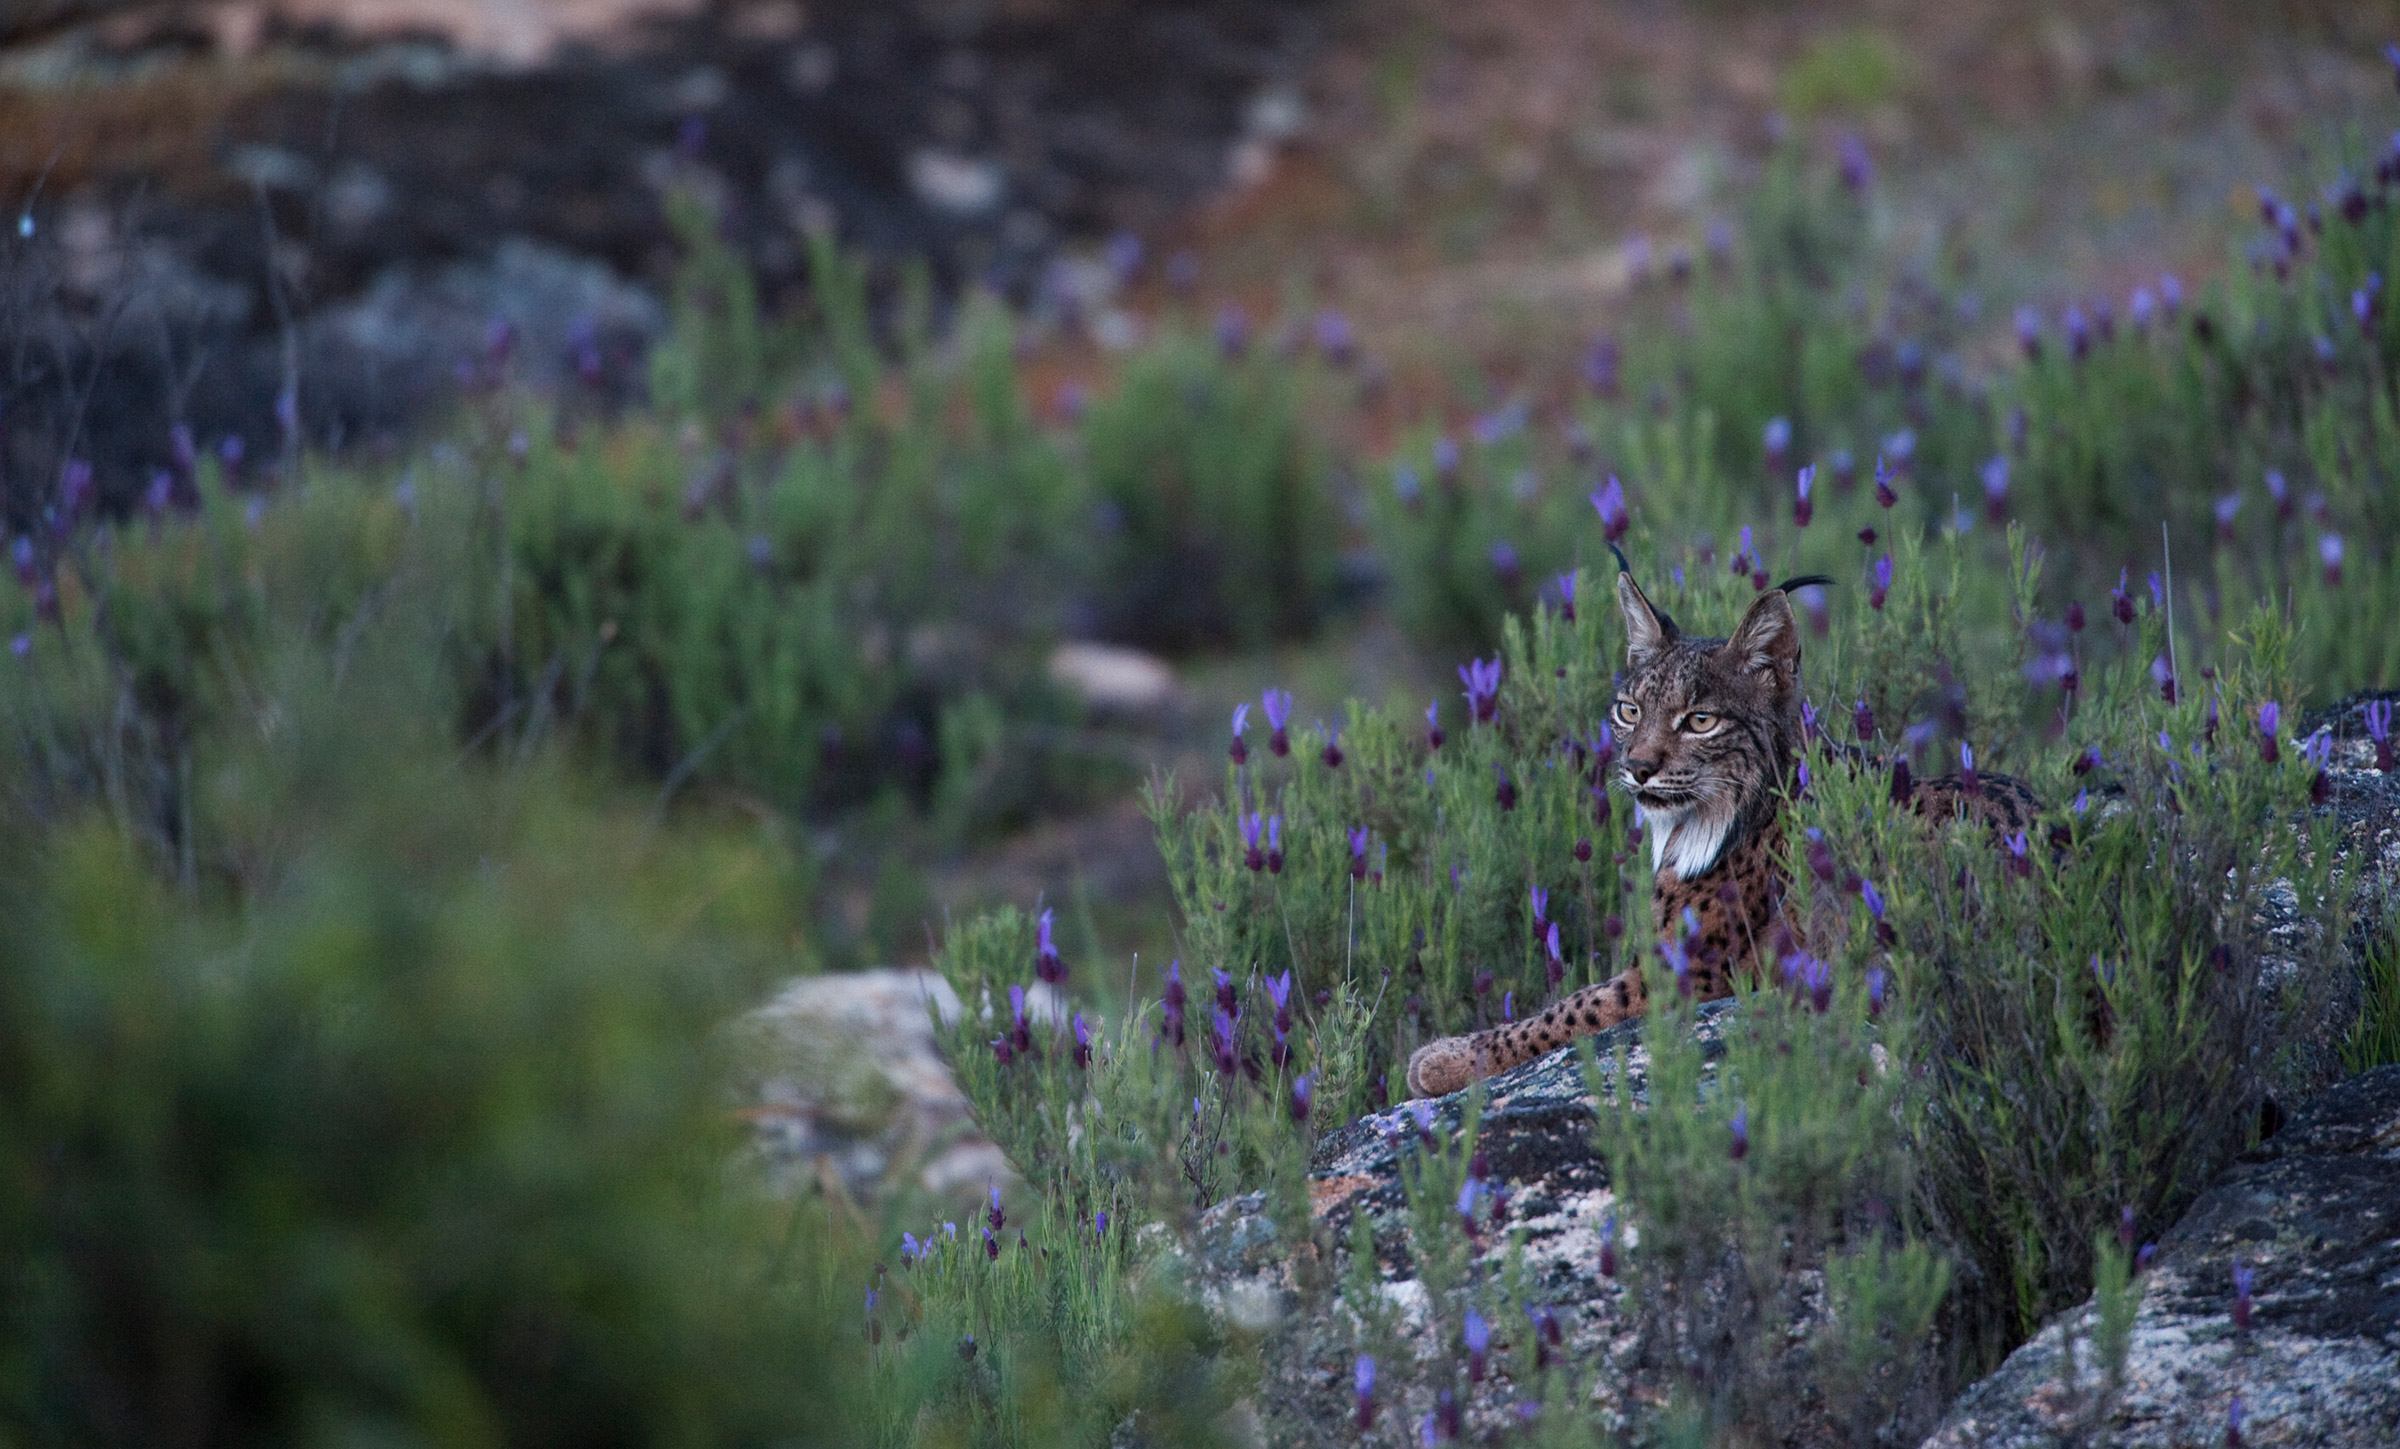 A critically endangered female Iberian lynx rests amongst purple flowers. Photo by conservation photographer Pete Oxford.